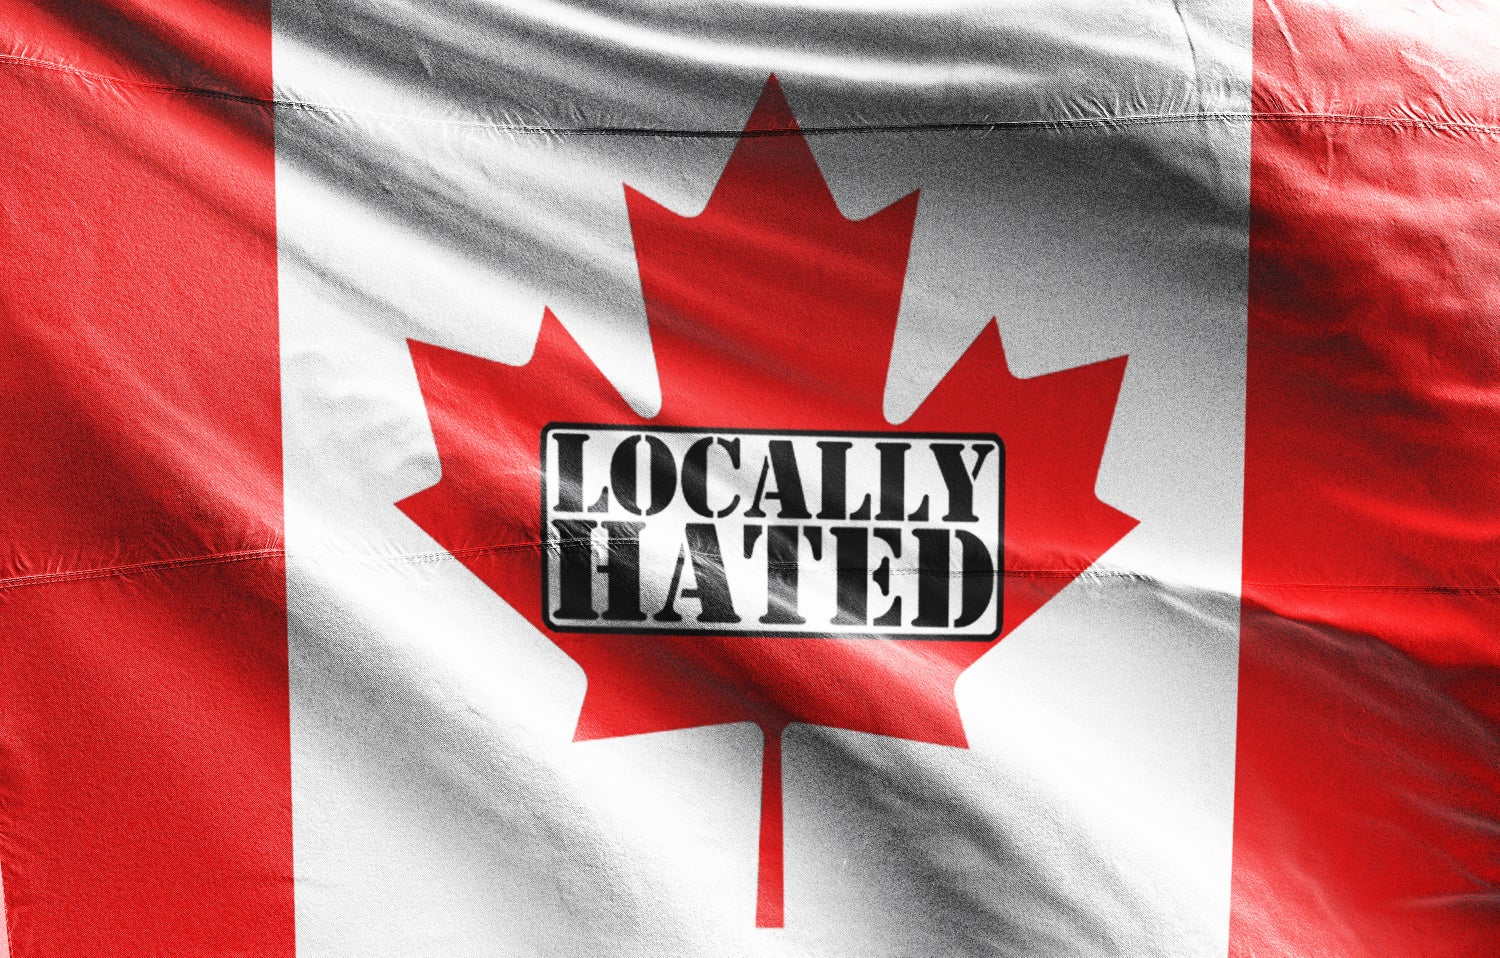 Image of 3'x5' Locally hated flag